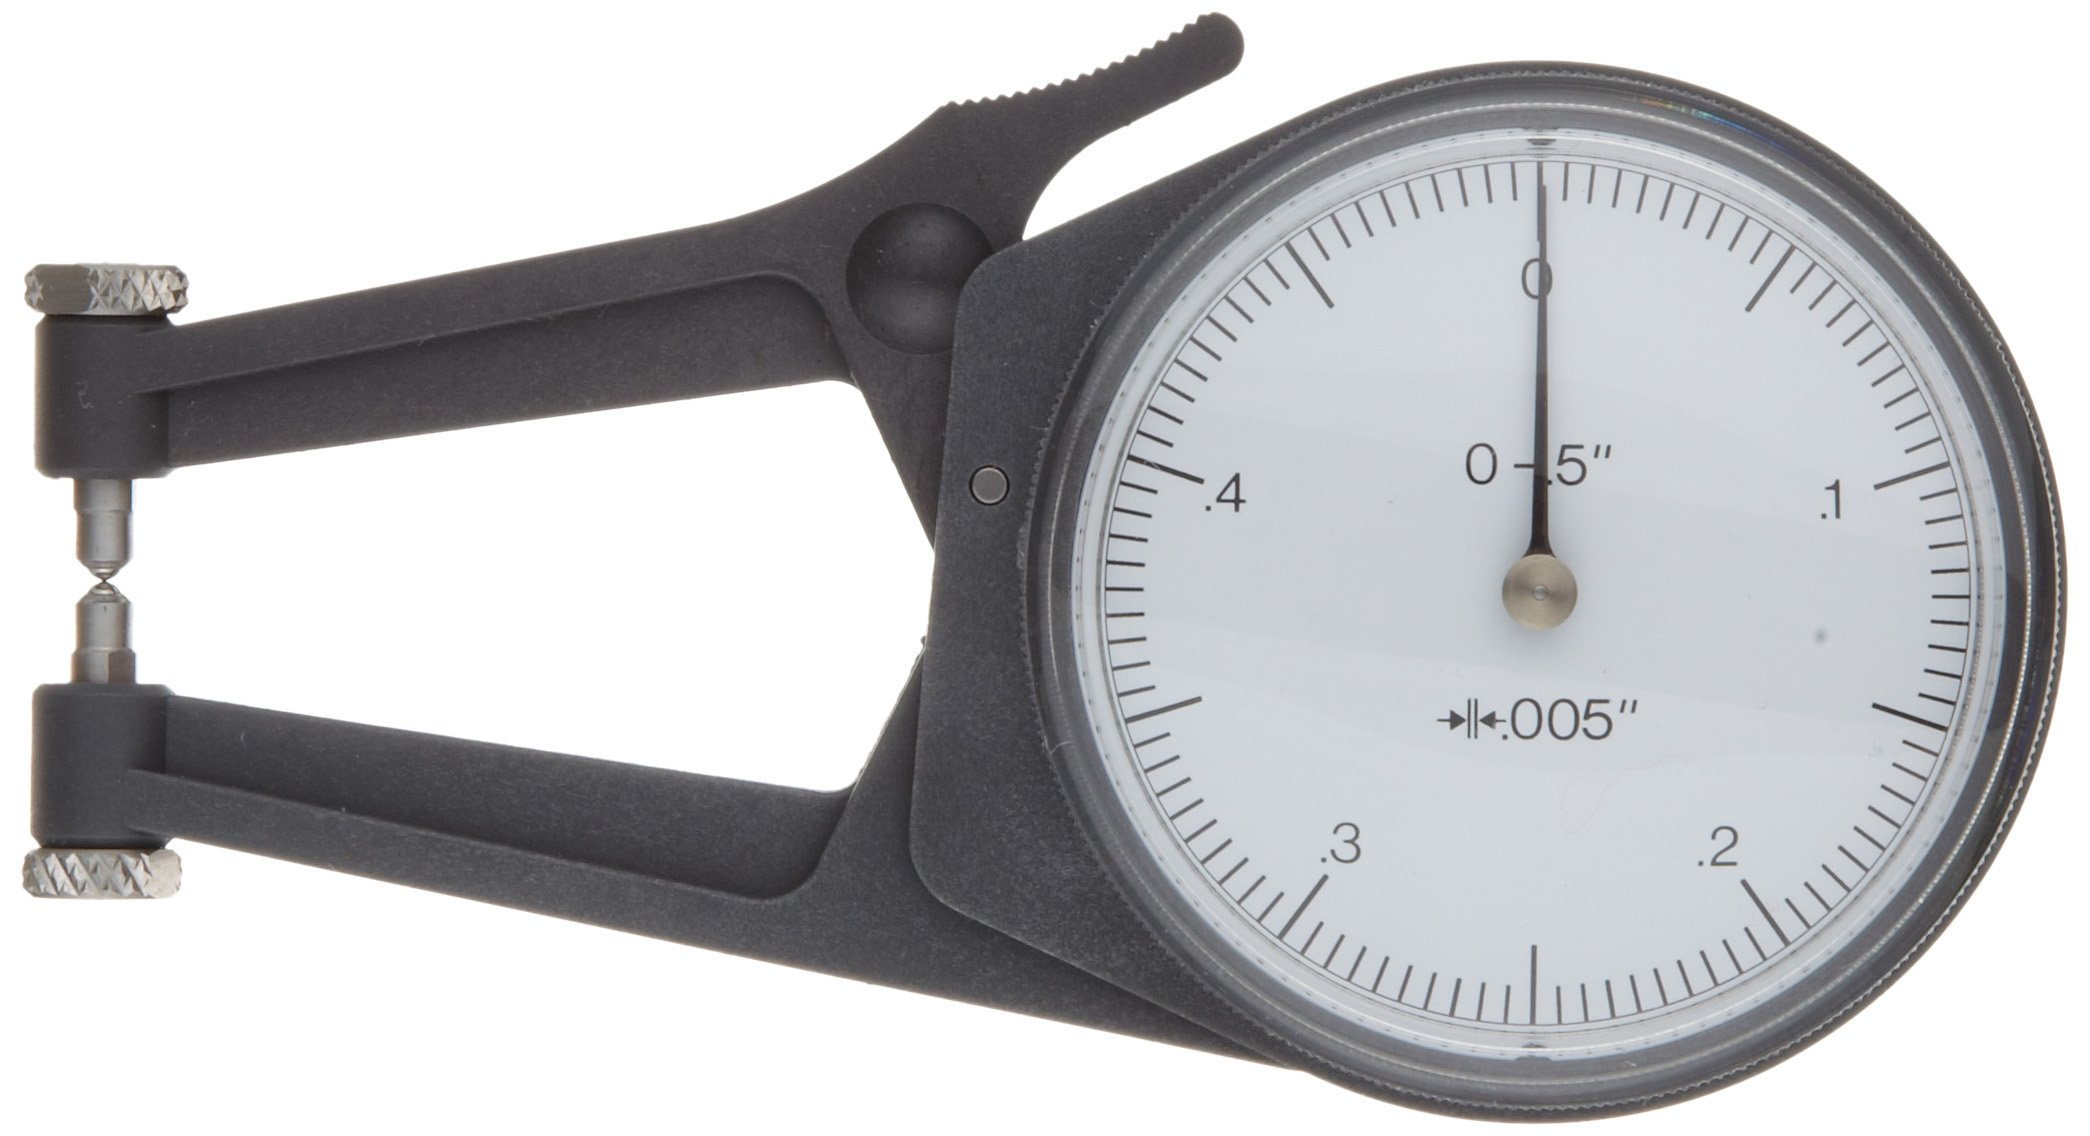 Mitutoyo 209-455 Caliper Gauge, Pointed Jaw, White Face, 0-0.80'' Range, +/-0.0015'' Accuracy, 0.0005'' Resolution, Meets IP65 Specifications